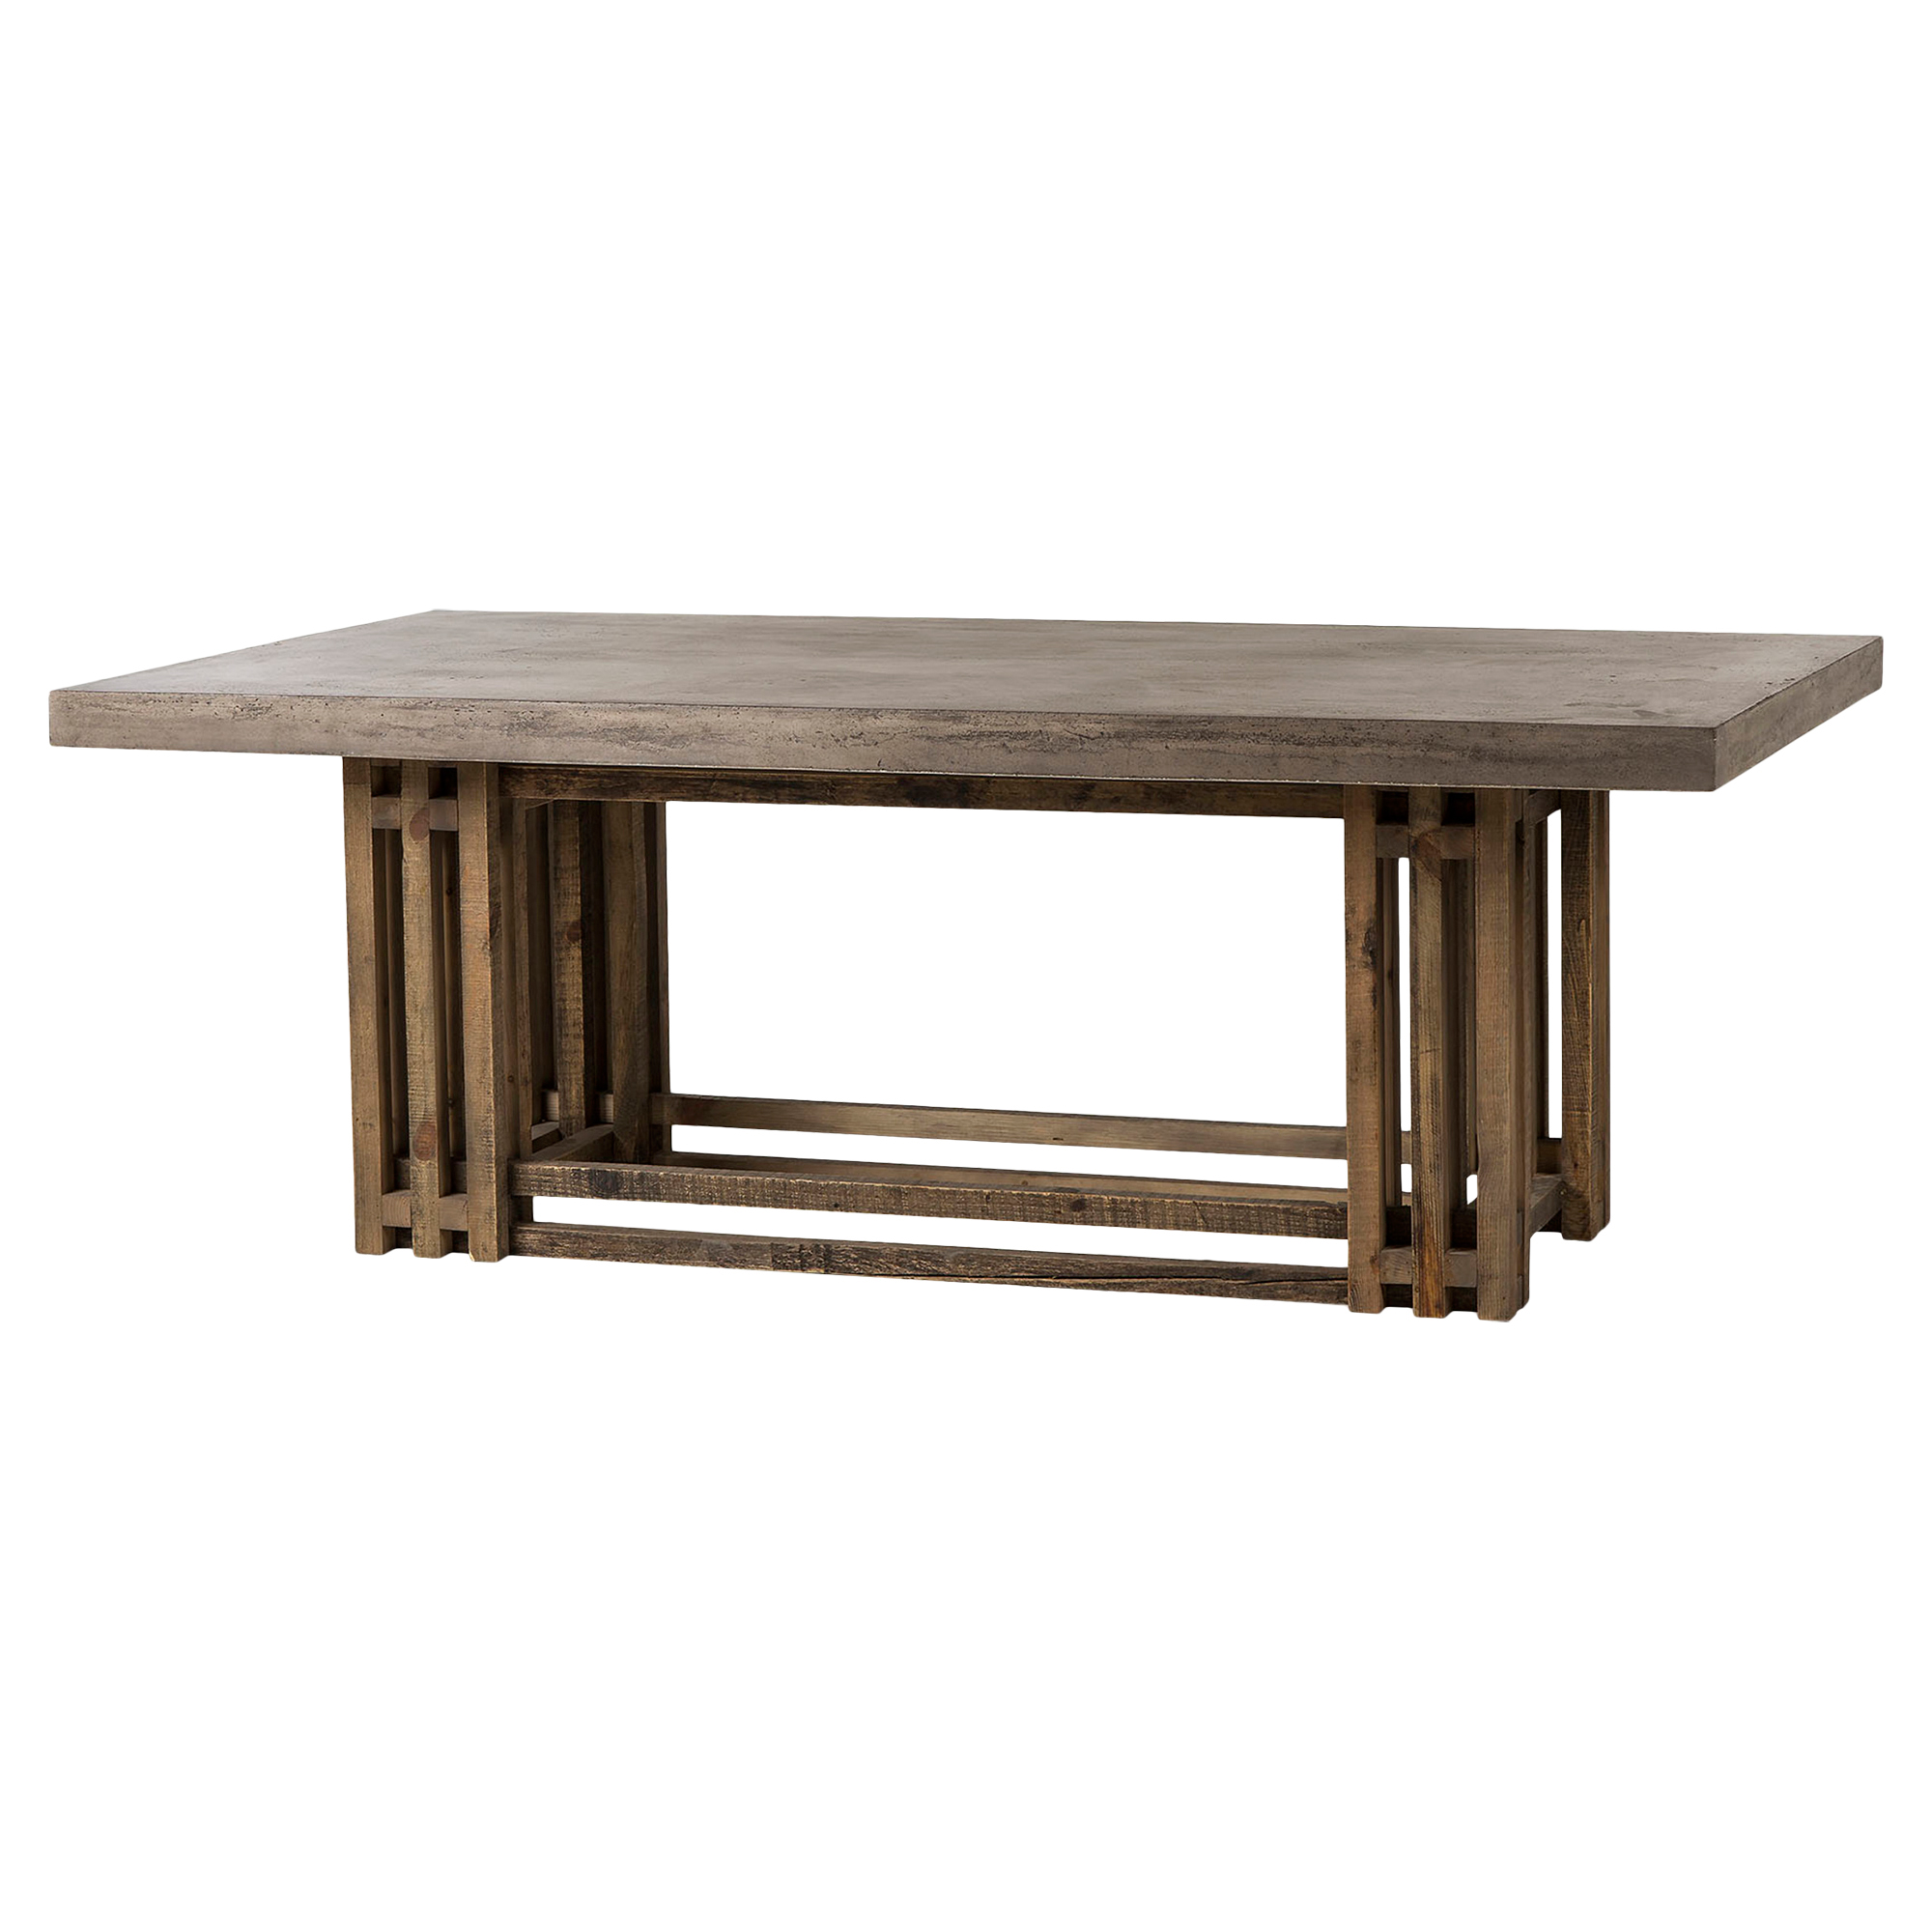 Struan Rustic Industrial Pine Cement Dining Table